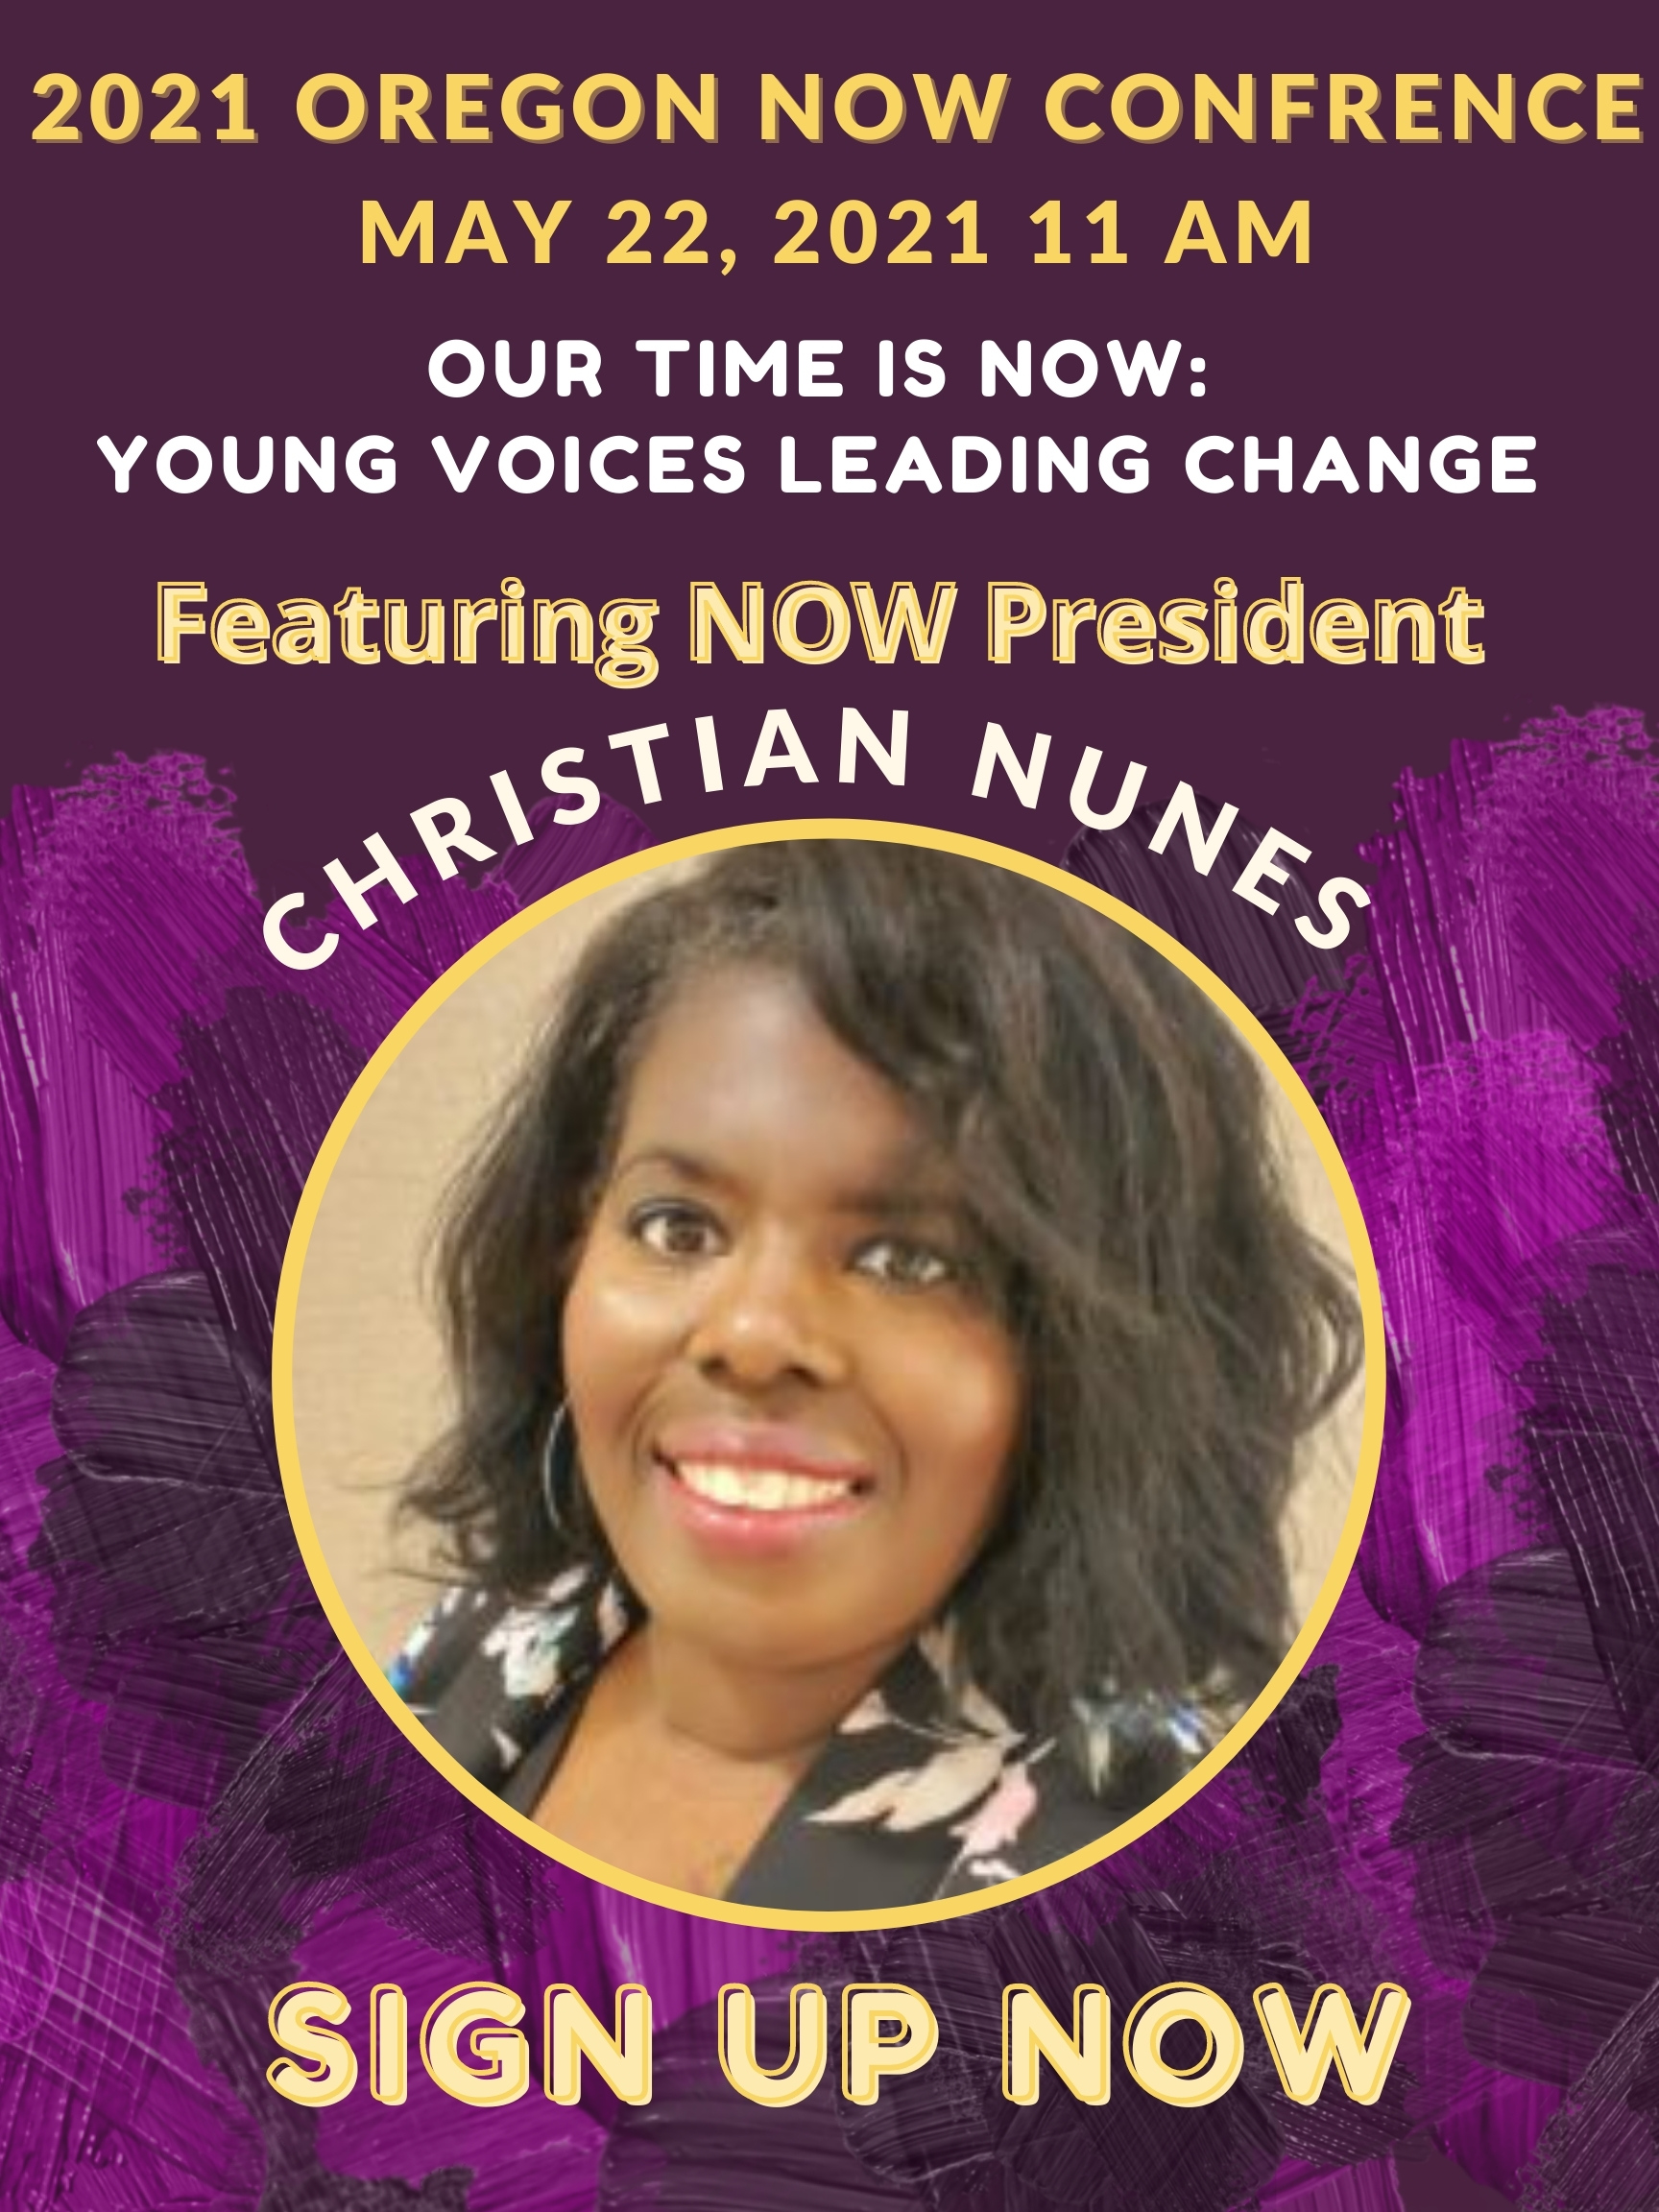 Flyer featuring National NOW President Christian Nunes